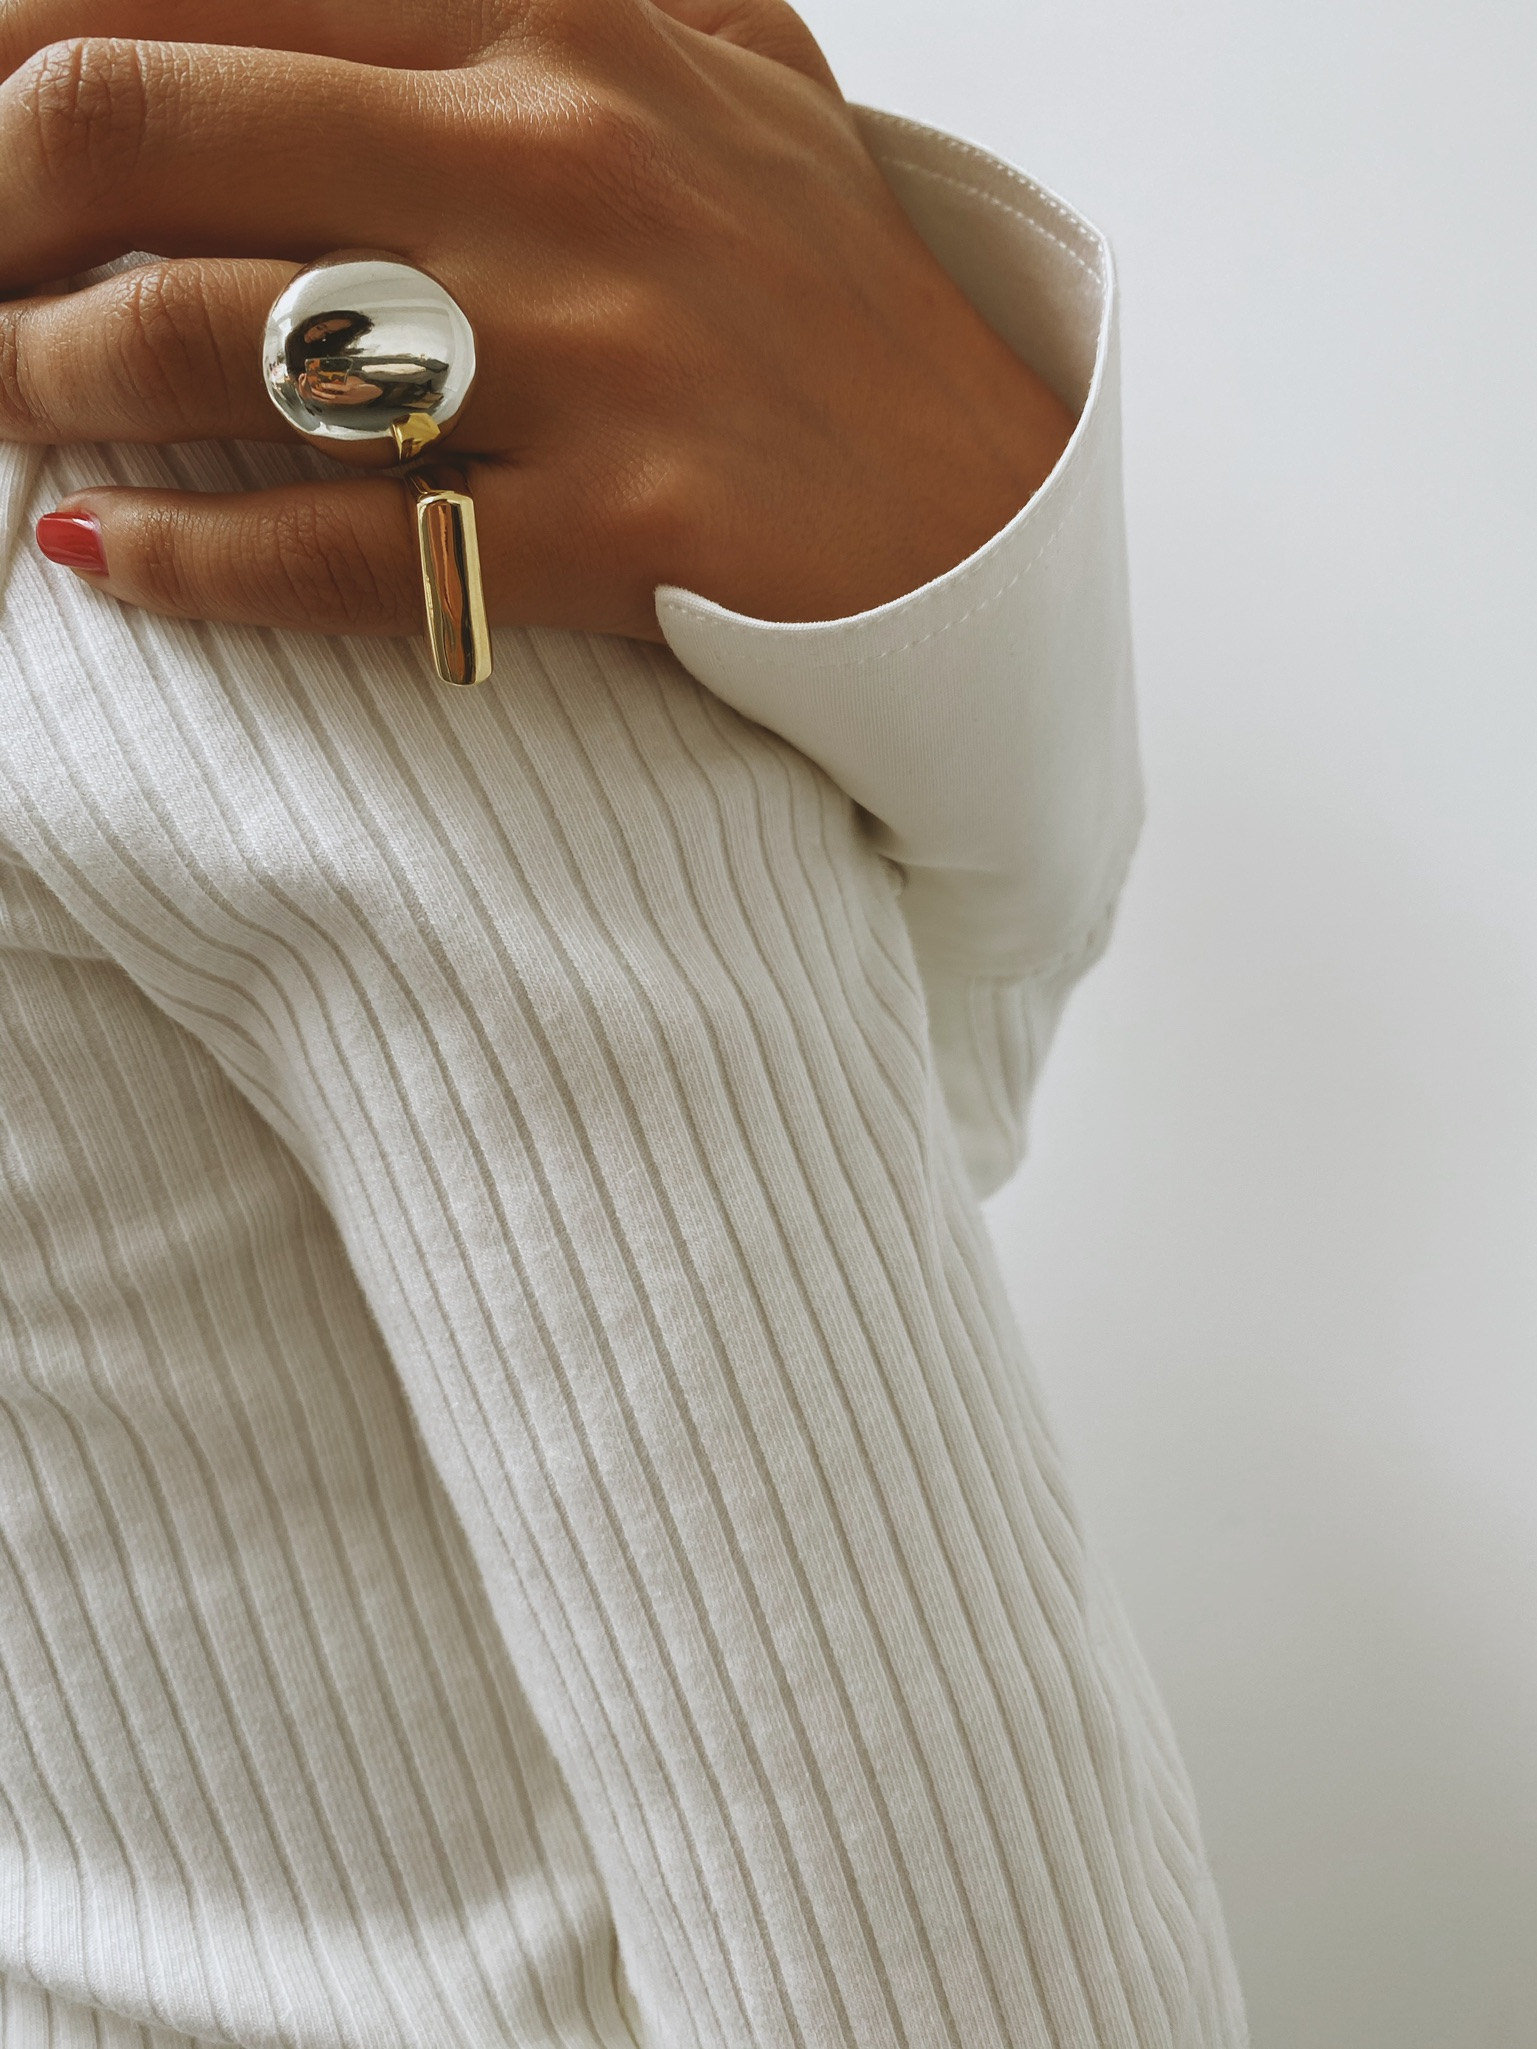 Chace Ring - Gold by Emili on curated-crowd.com